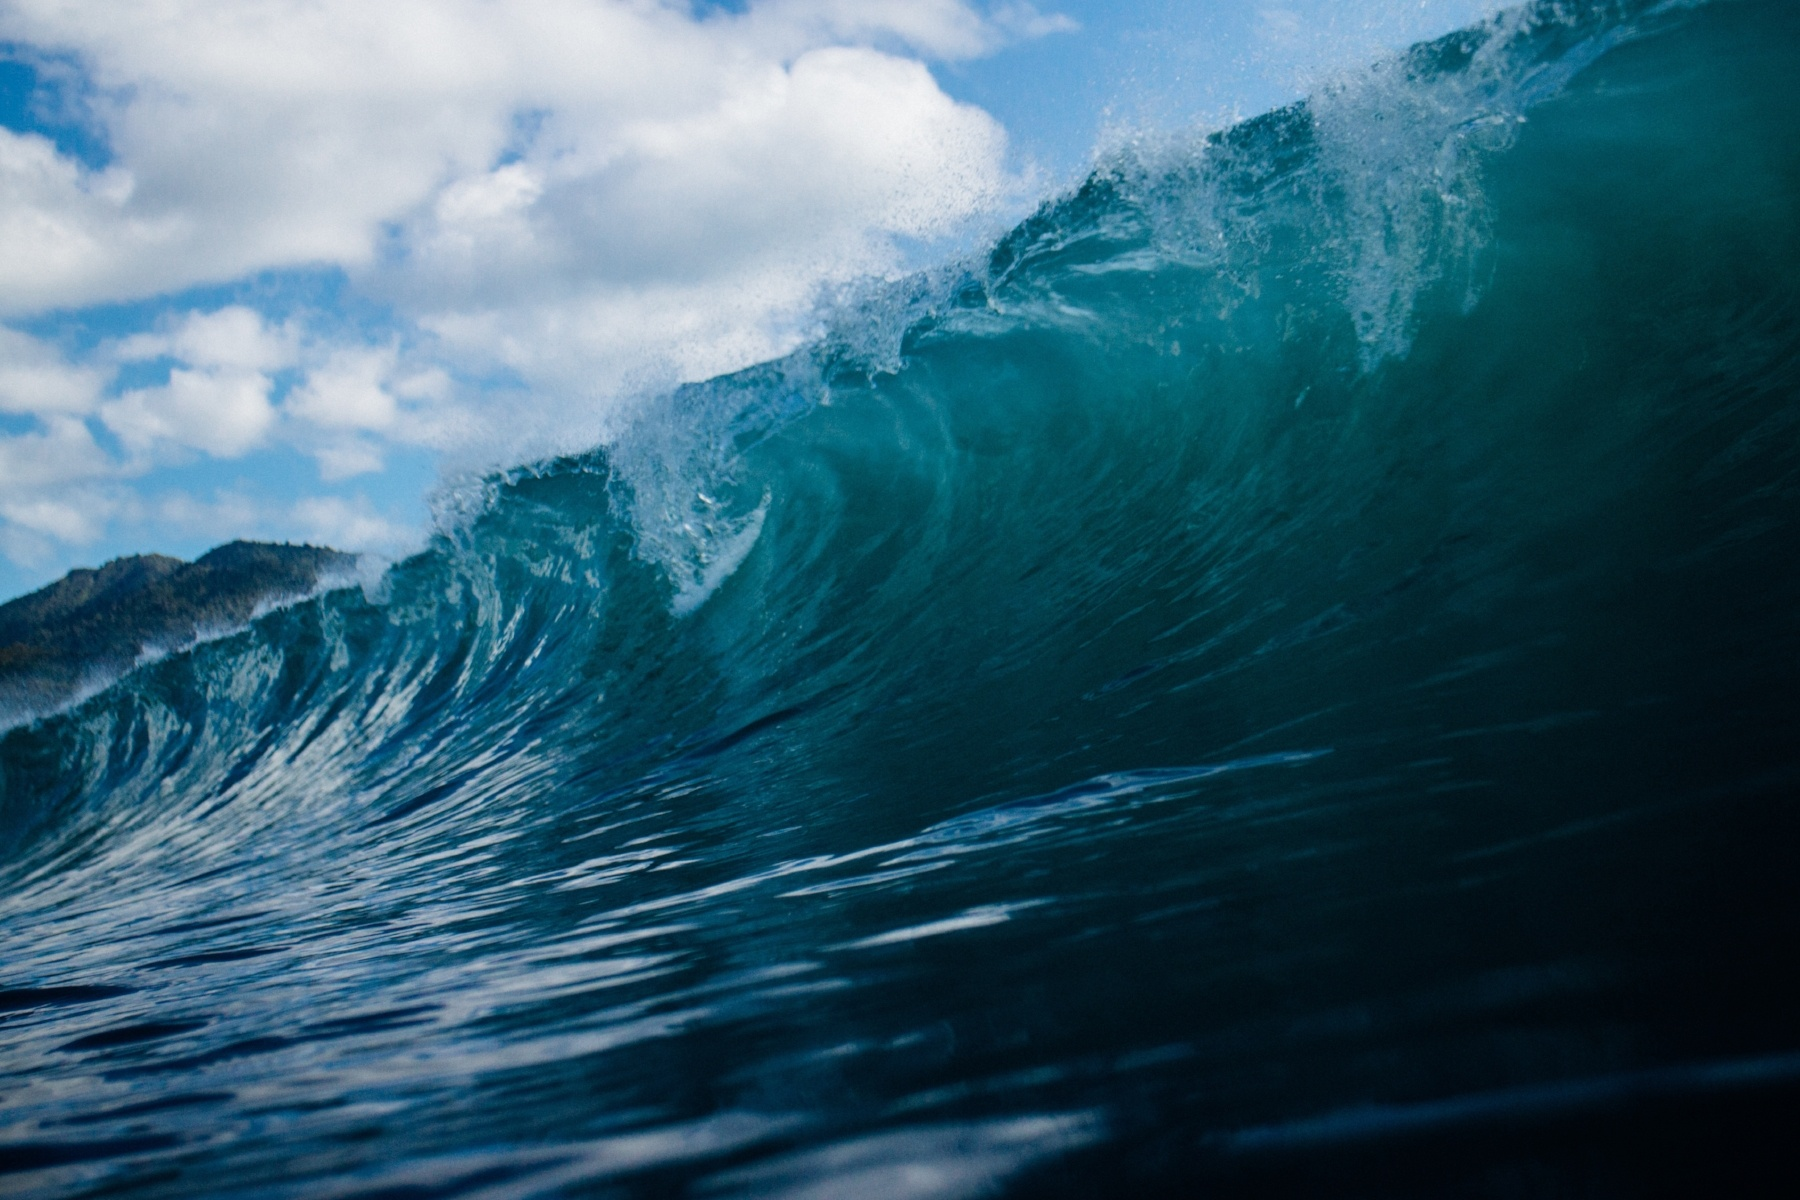 waves-891257-edited.jpeg